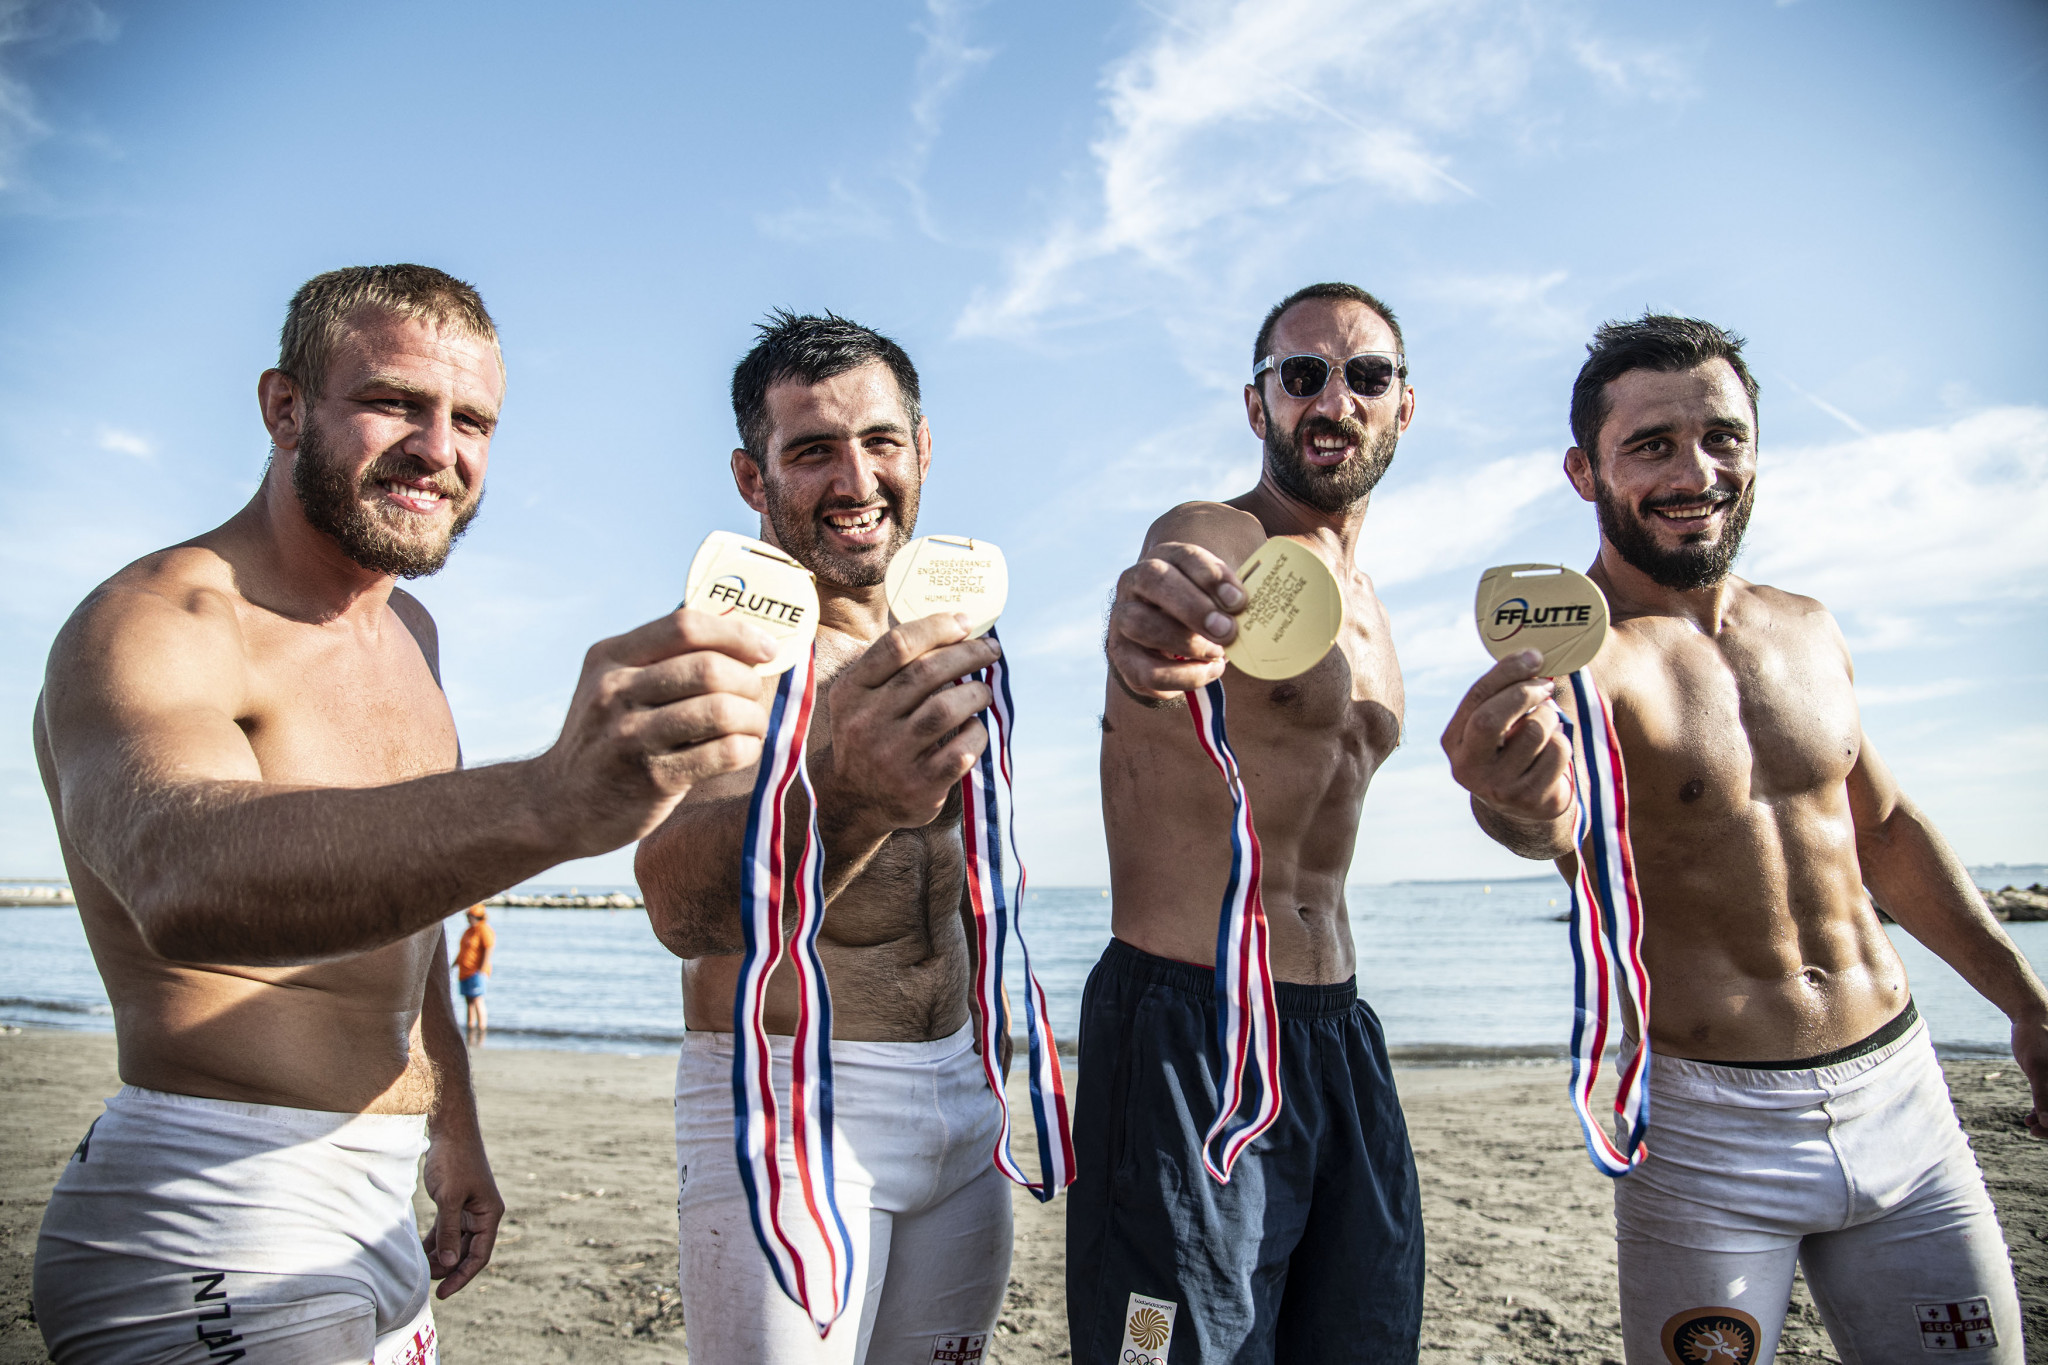 Good day for winners of Beach Wrestling World Series' first event at second leg in Rome